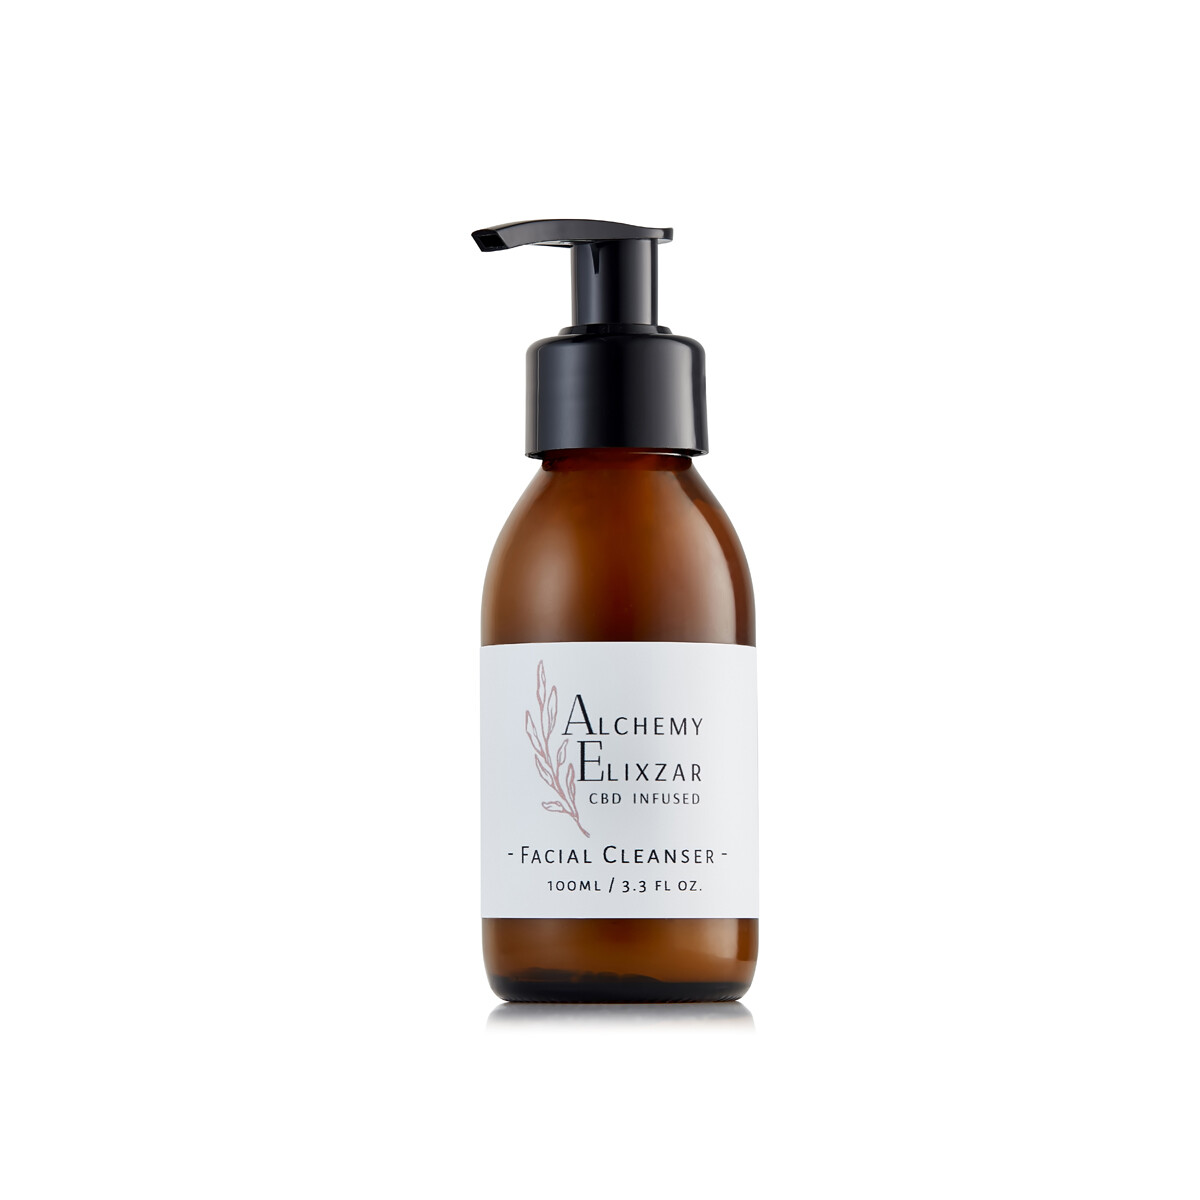 Facial Cleanser - 100ml